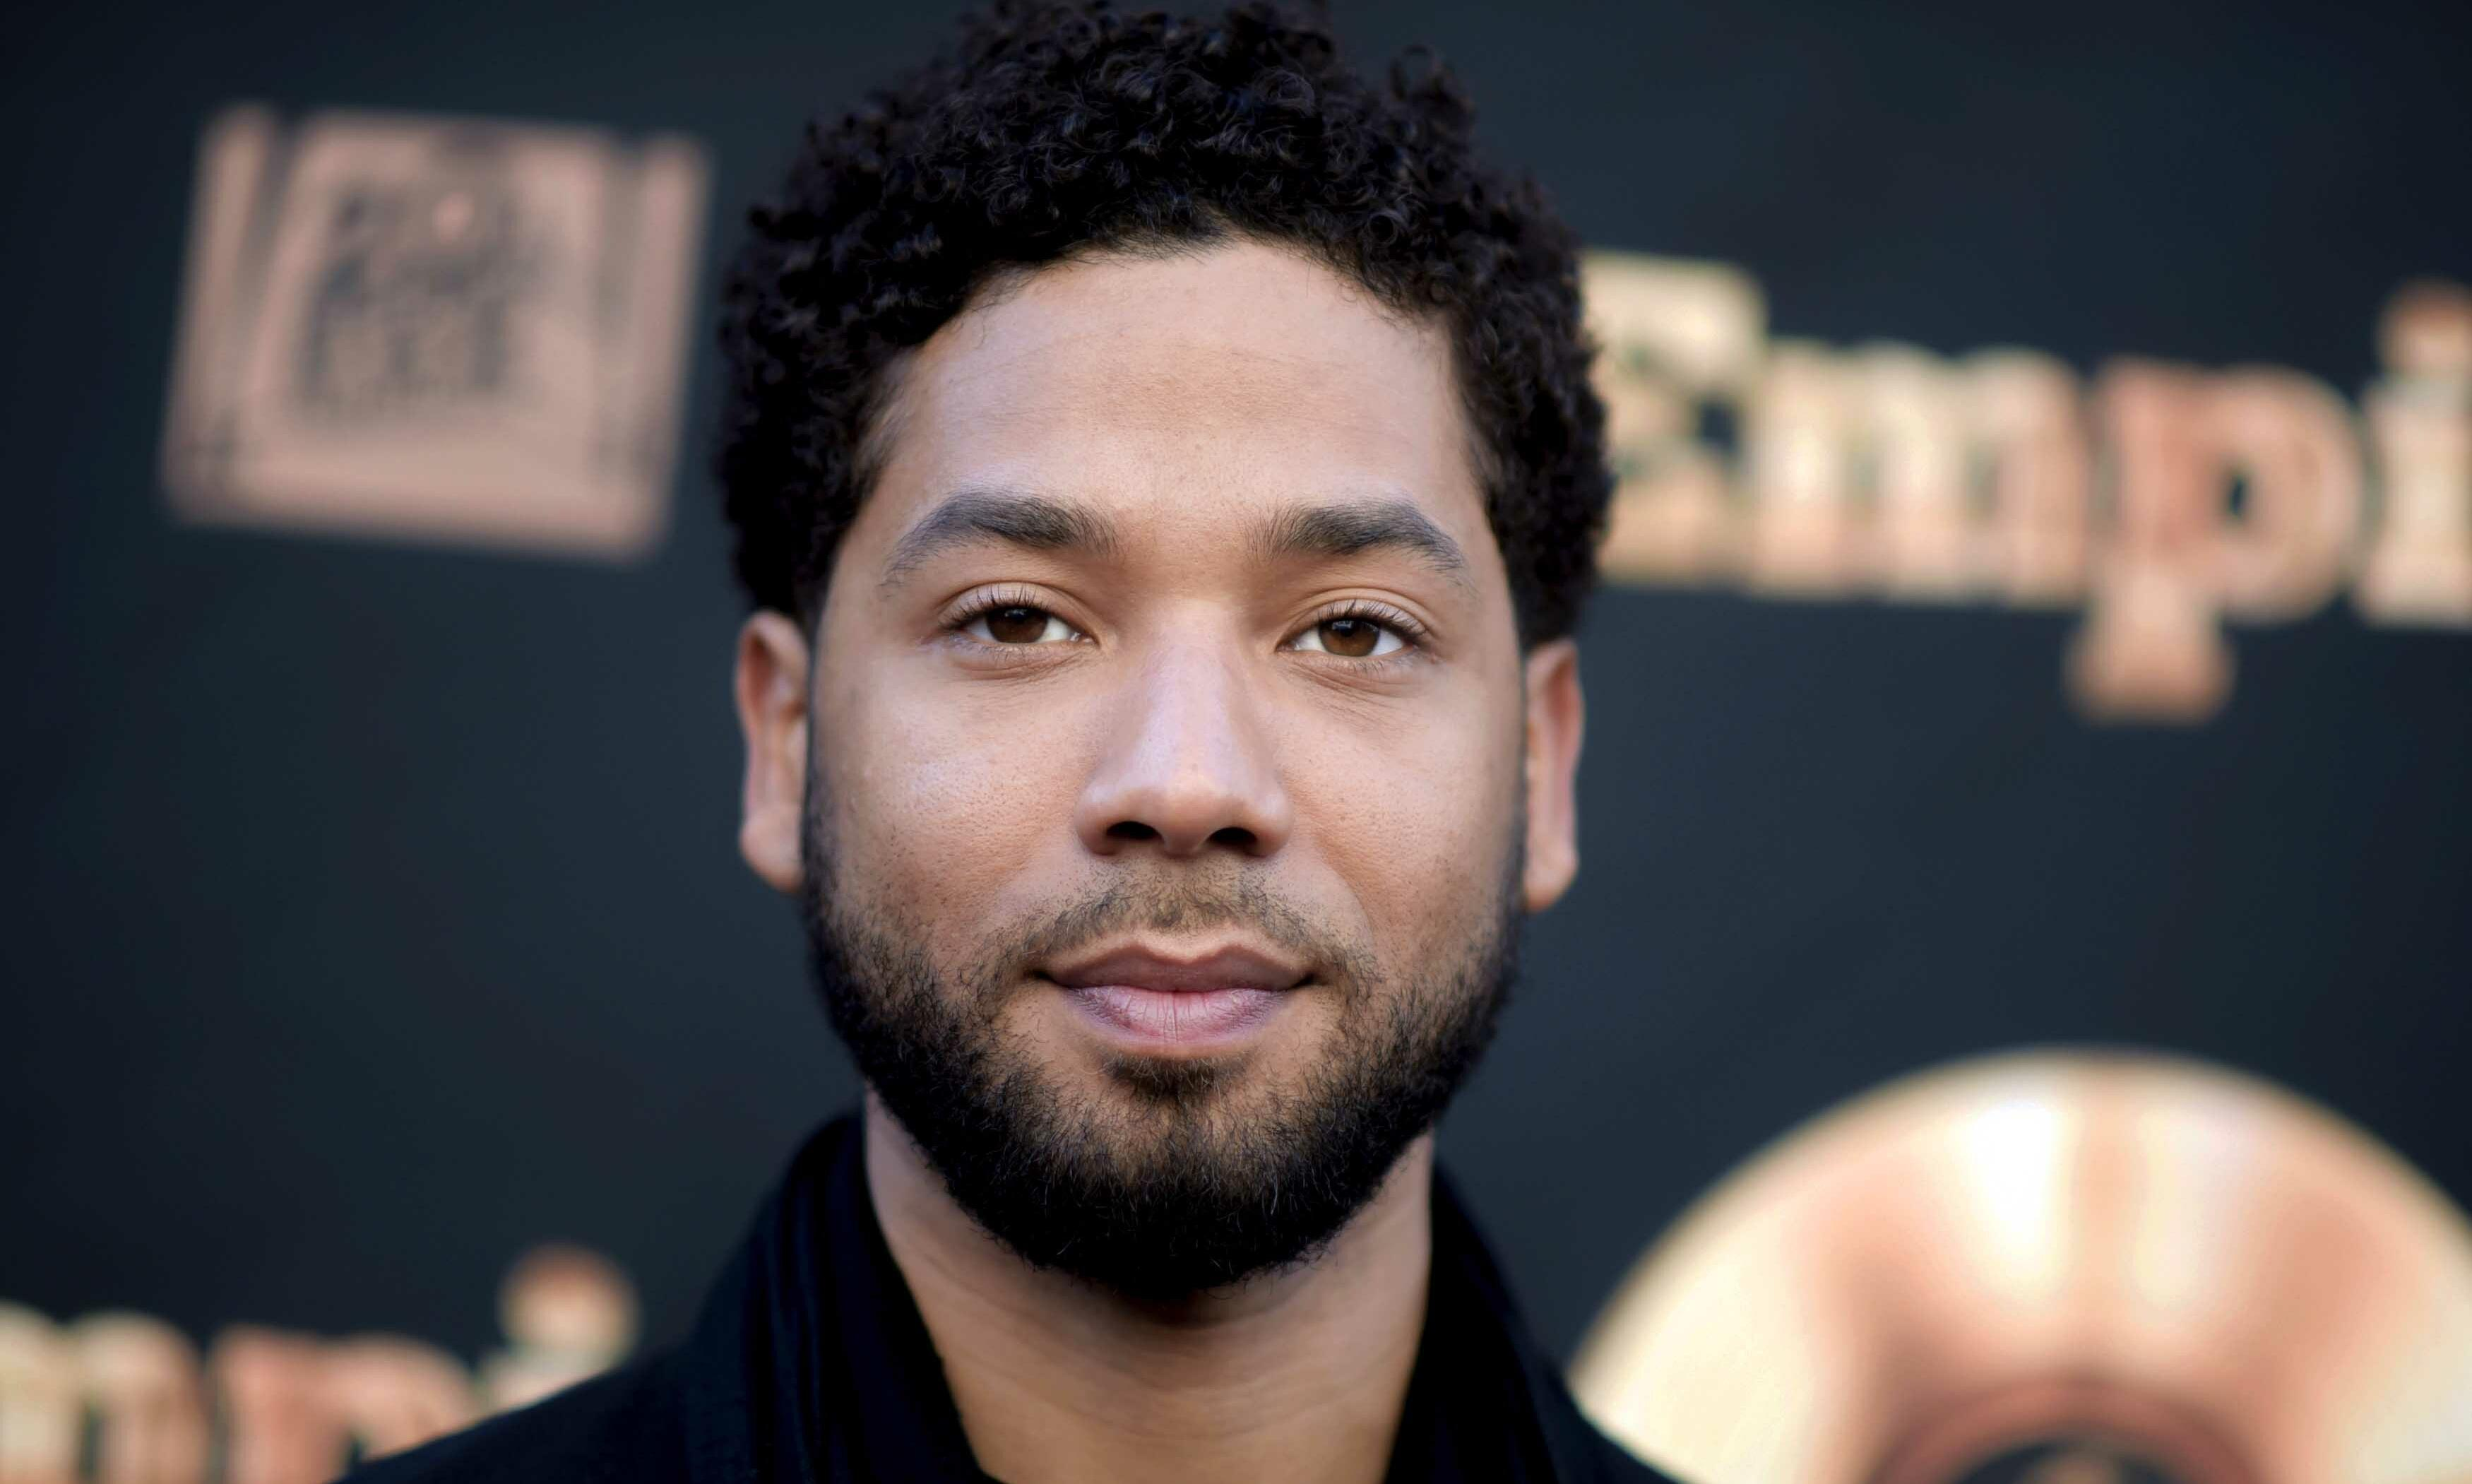 From hate crime to hoax? How Jussie Smollett's strange story unravelled